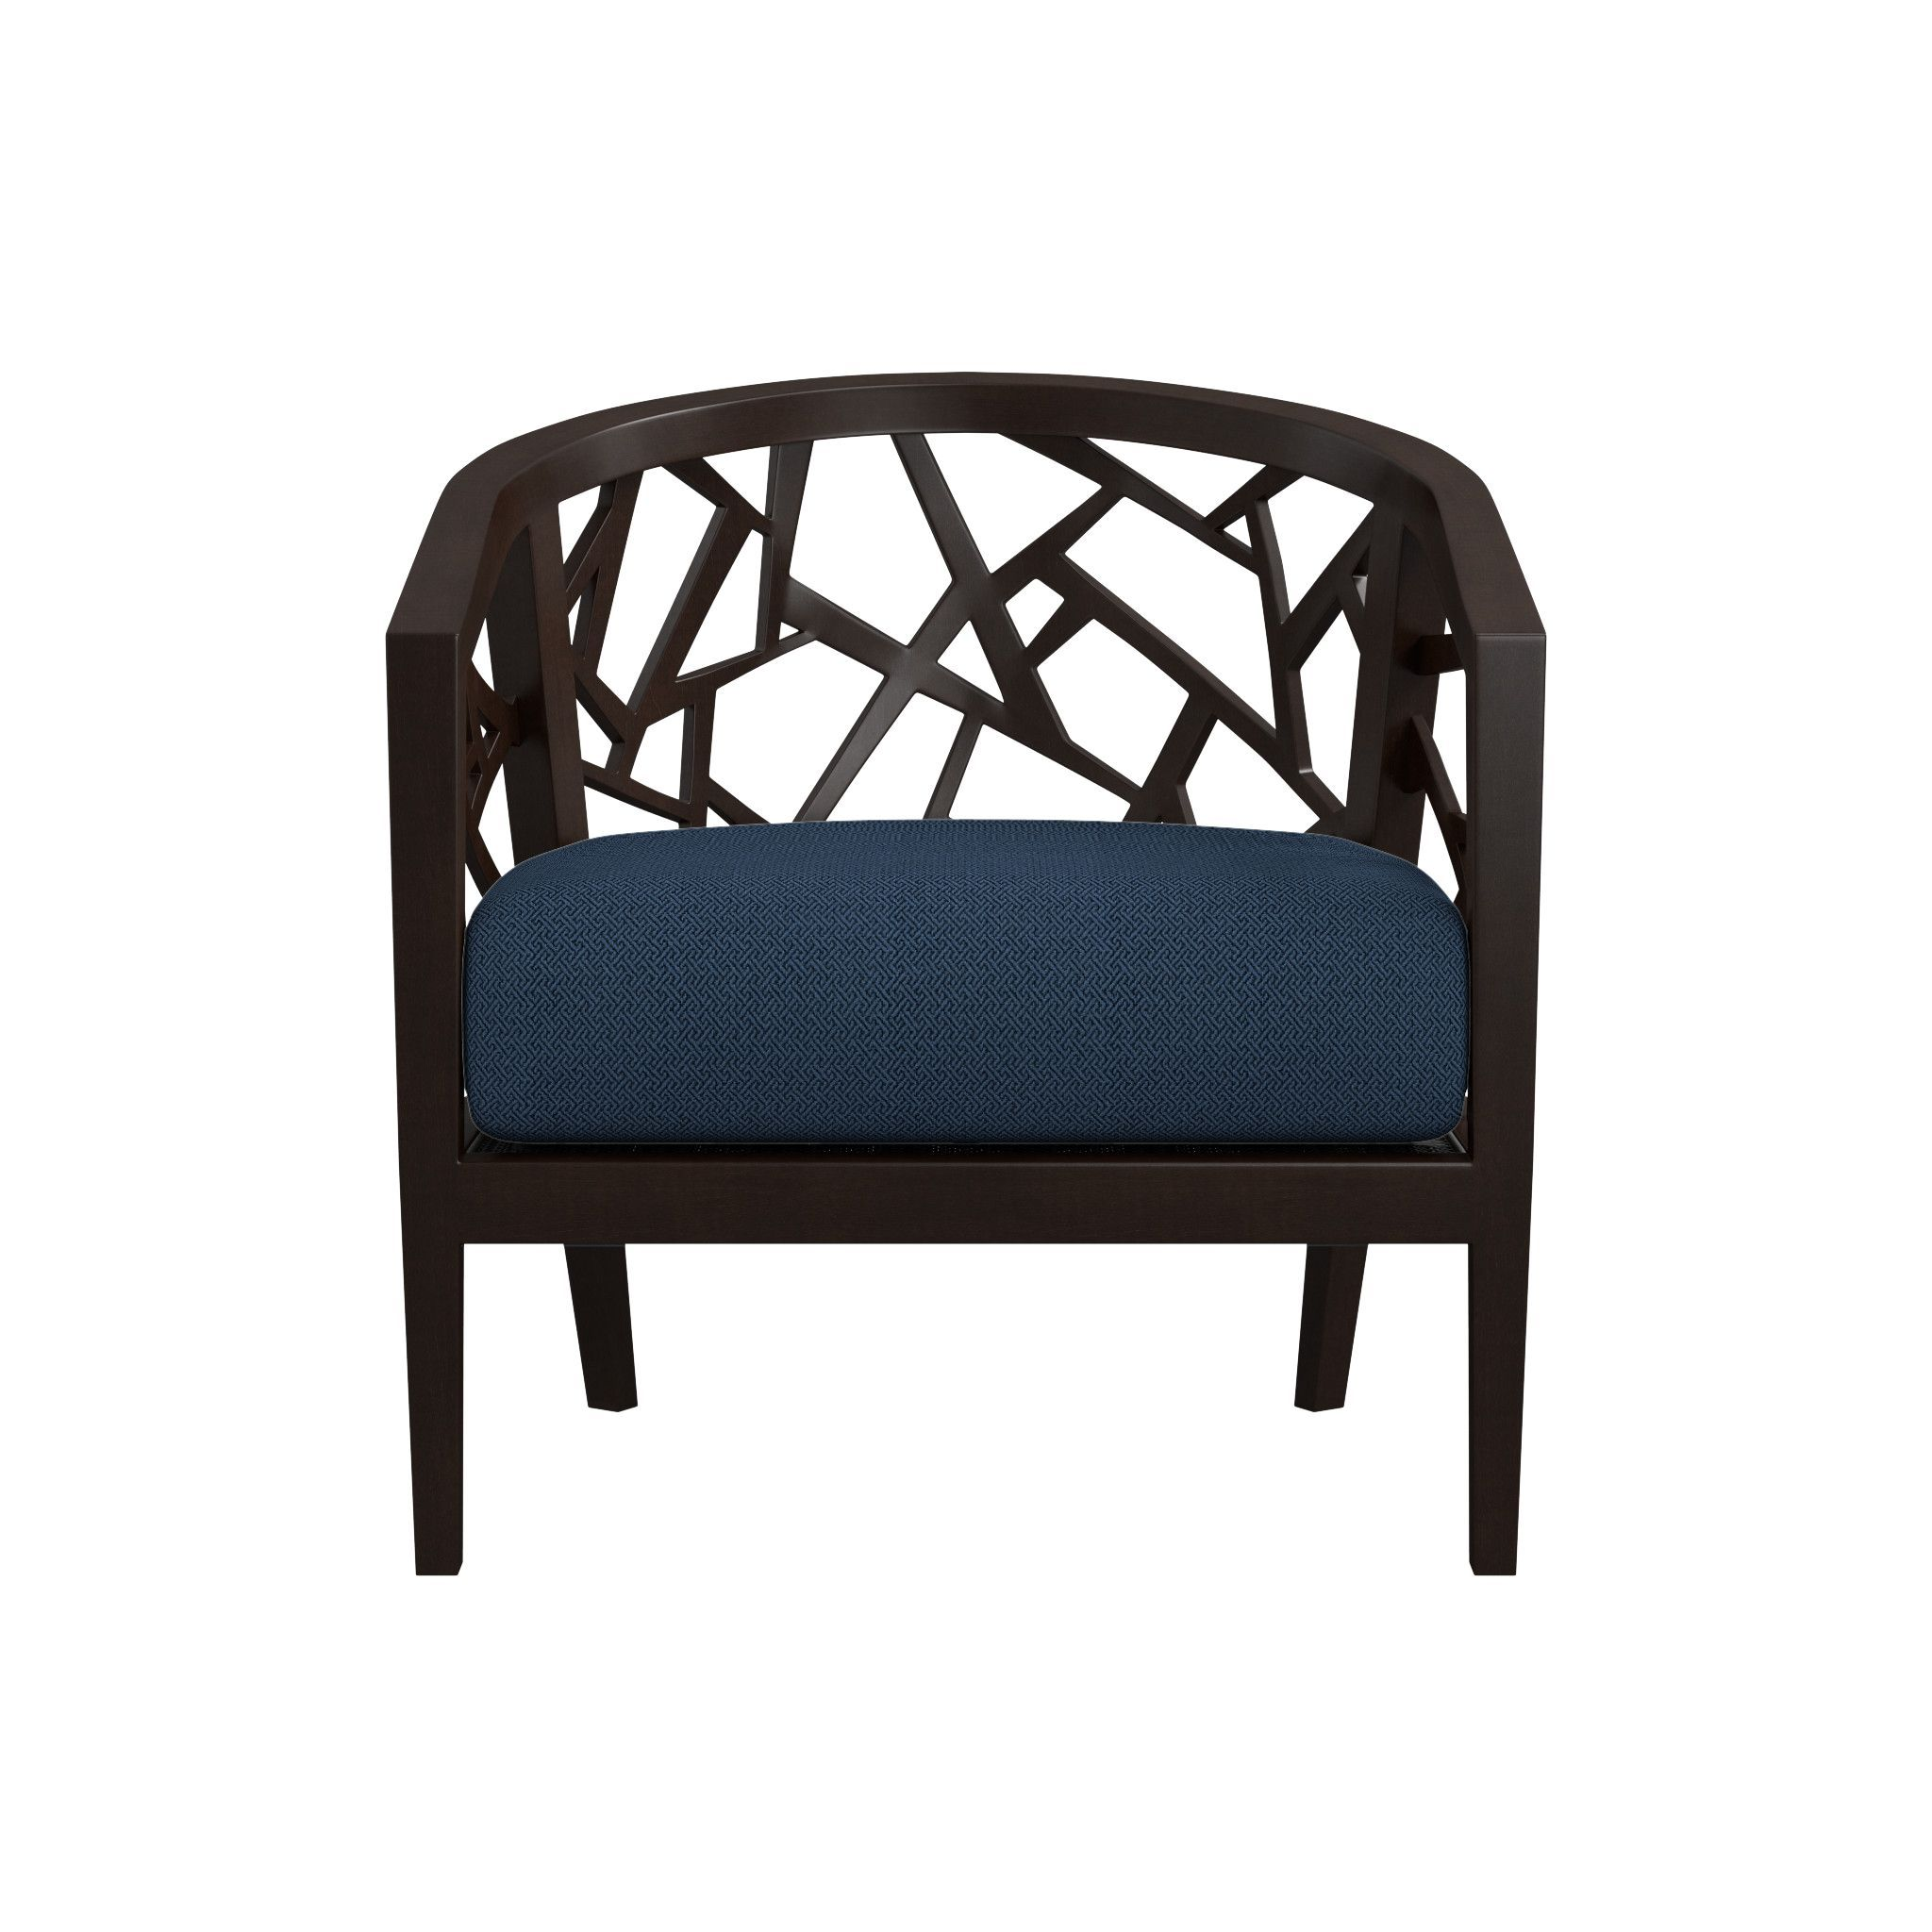 Ankara truffle frame chair with fabric cushion crate and